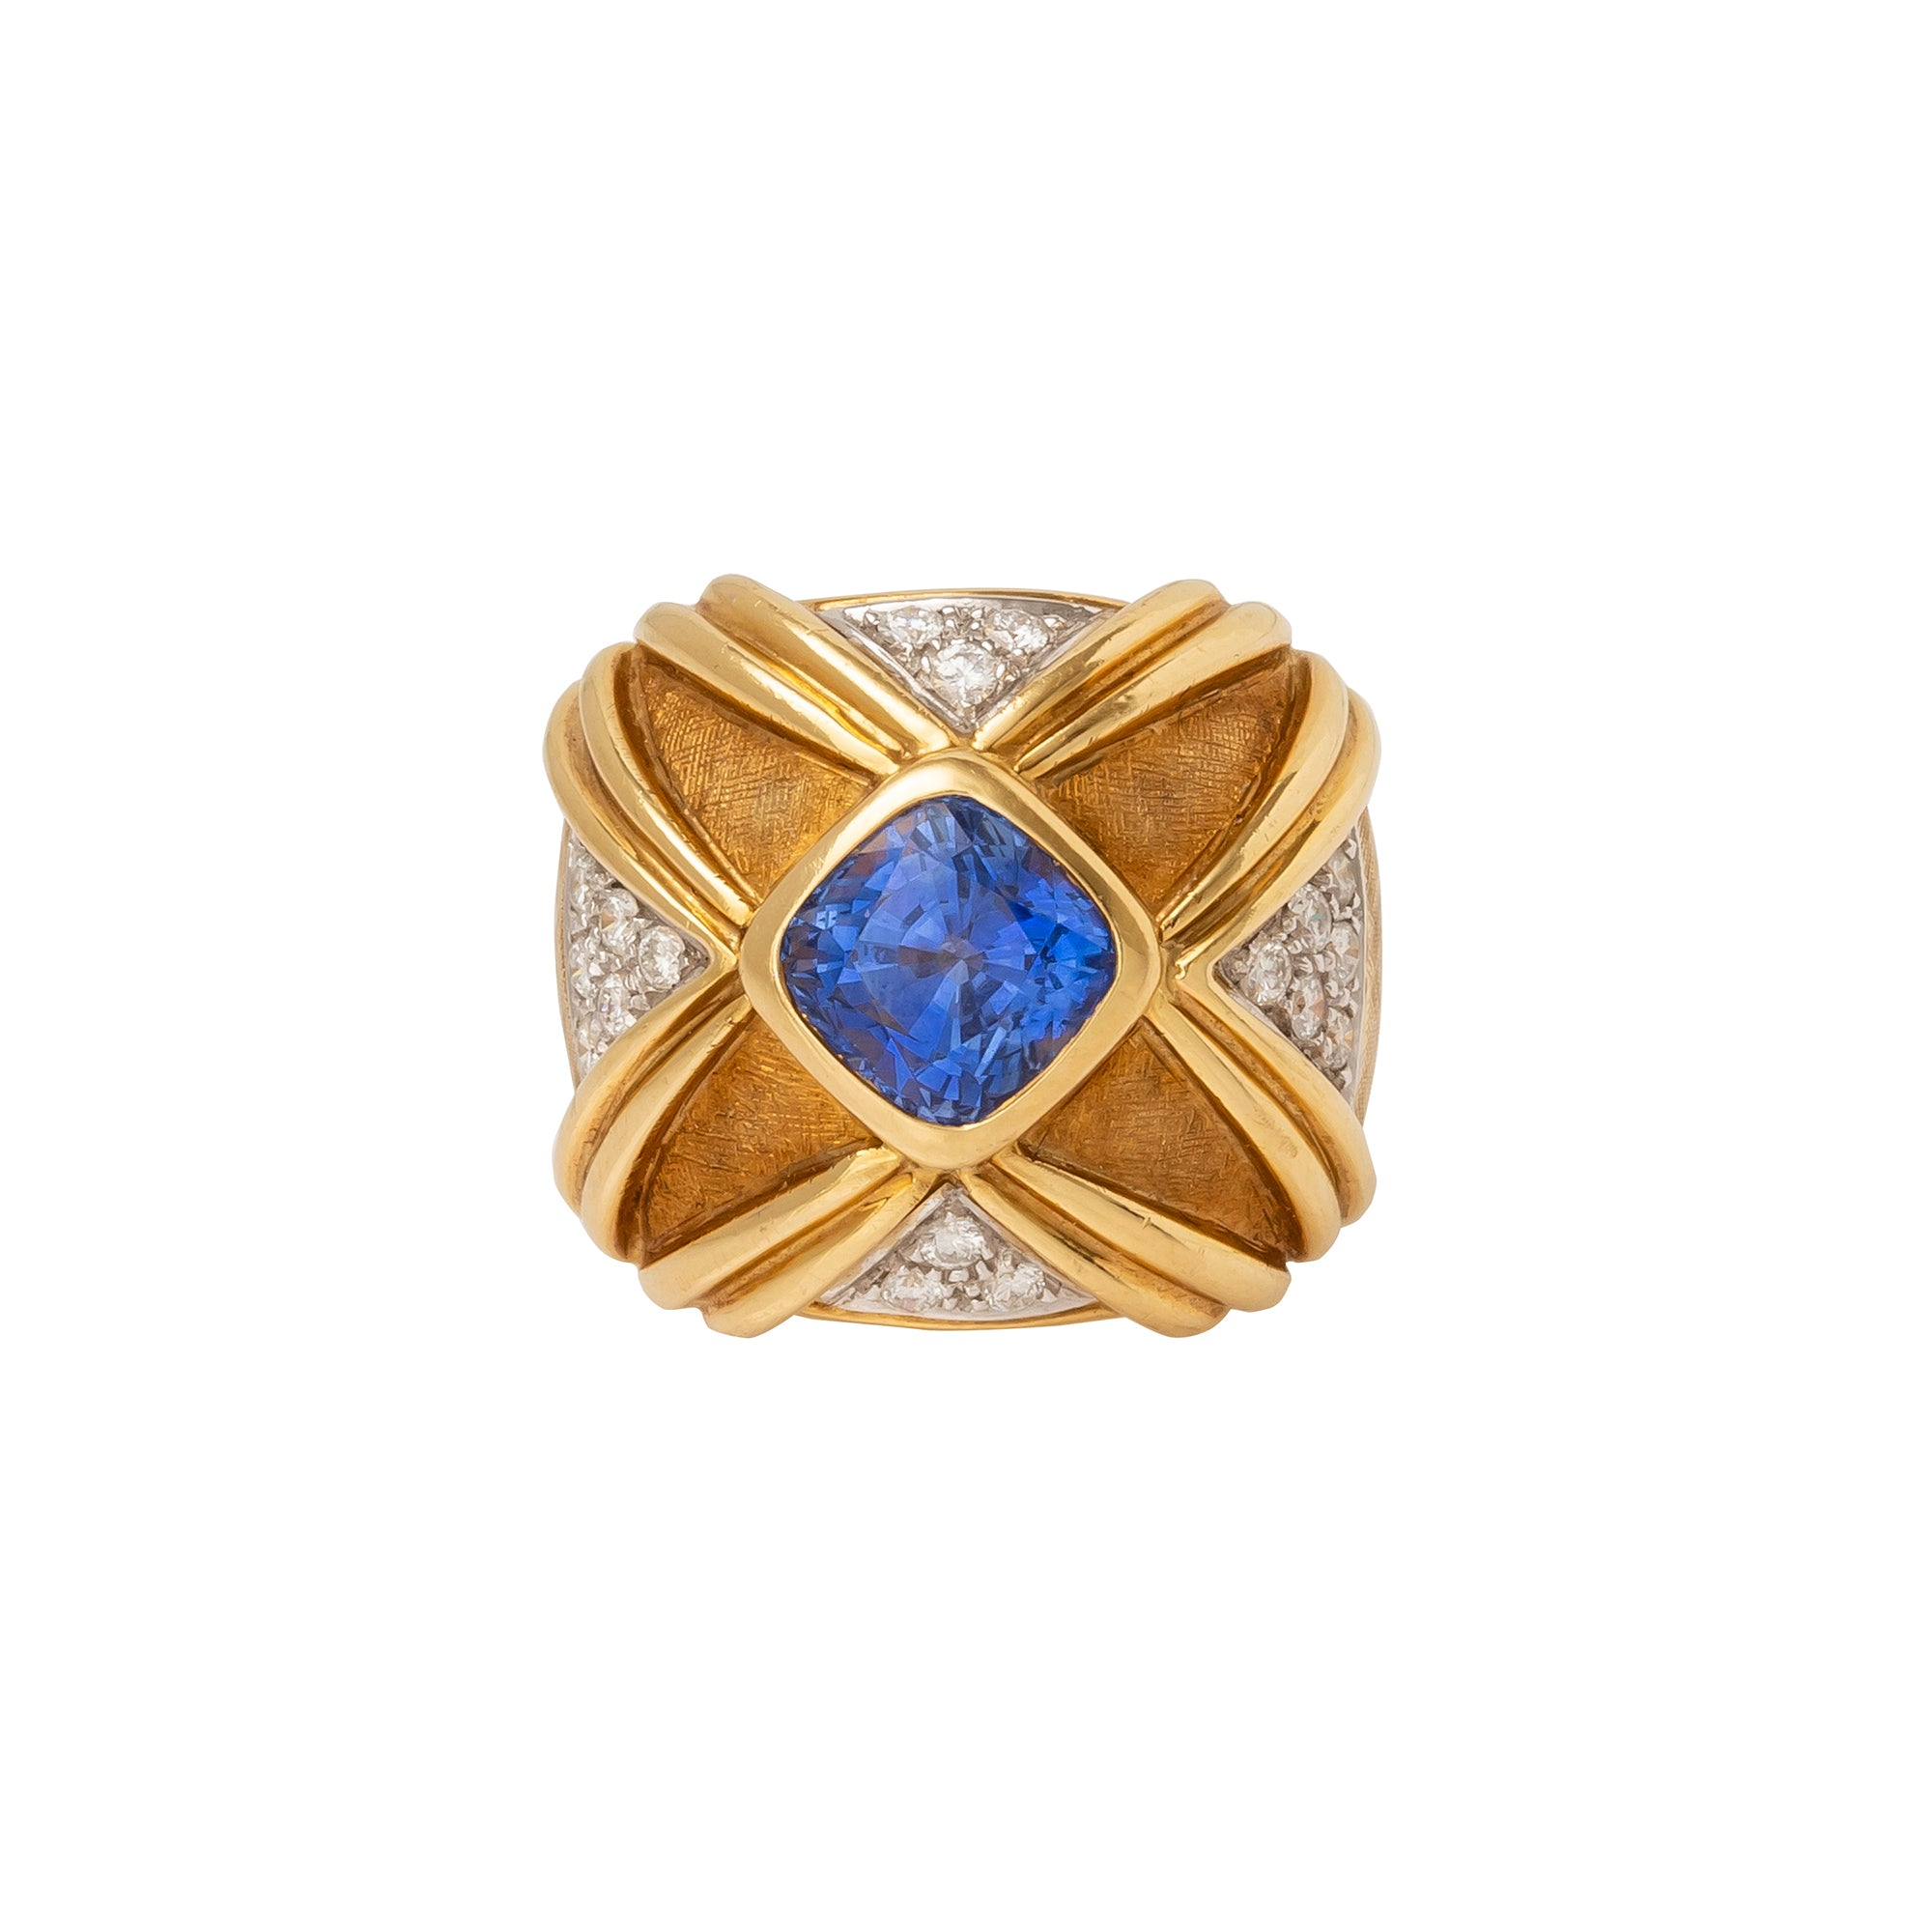 Antique & Vintage Jewelry Vintage Ceylon Sapphire Ring - Ruven Perelman - Earrings - Broken English Jewelry